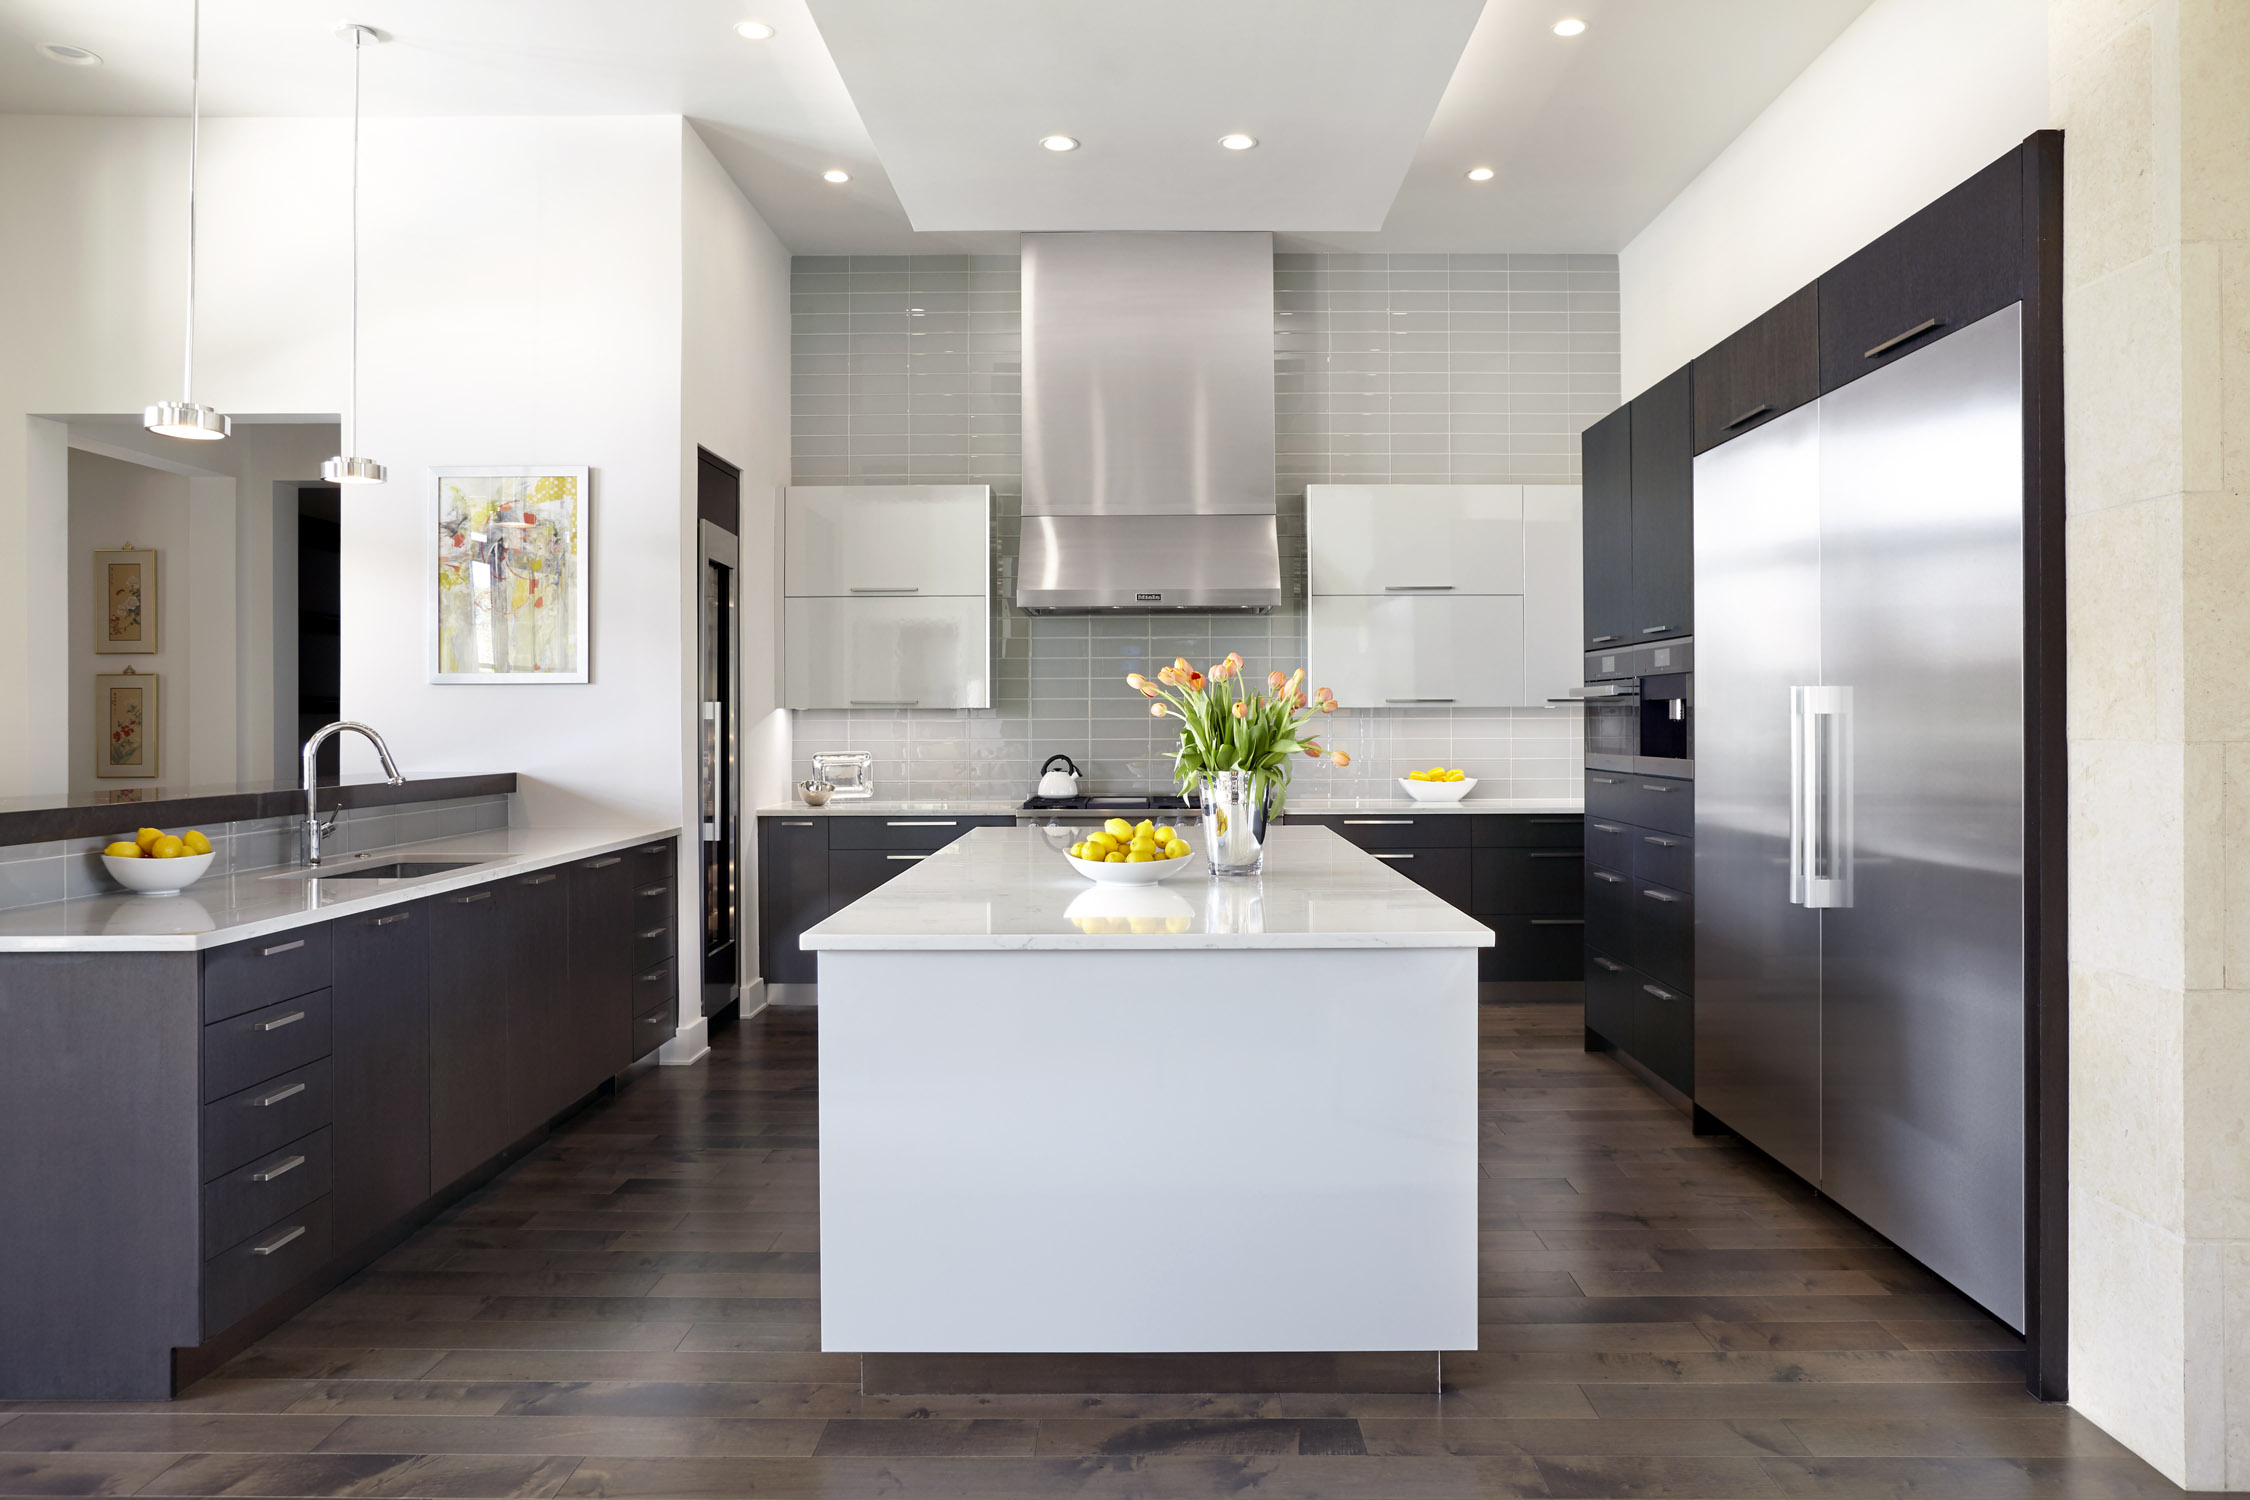 Creating Harmony in New Home Construction